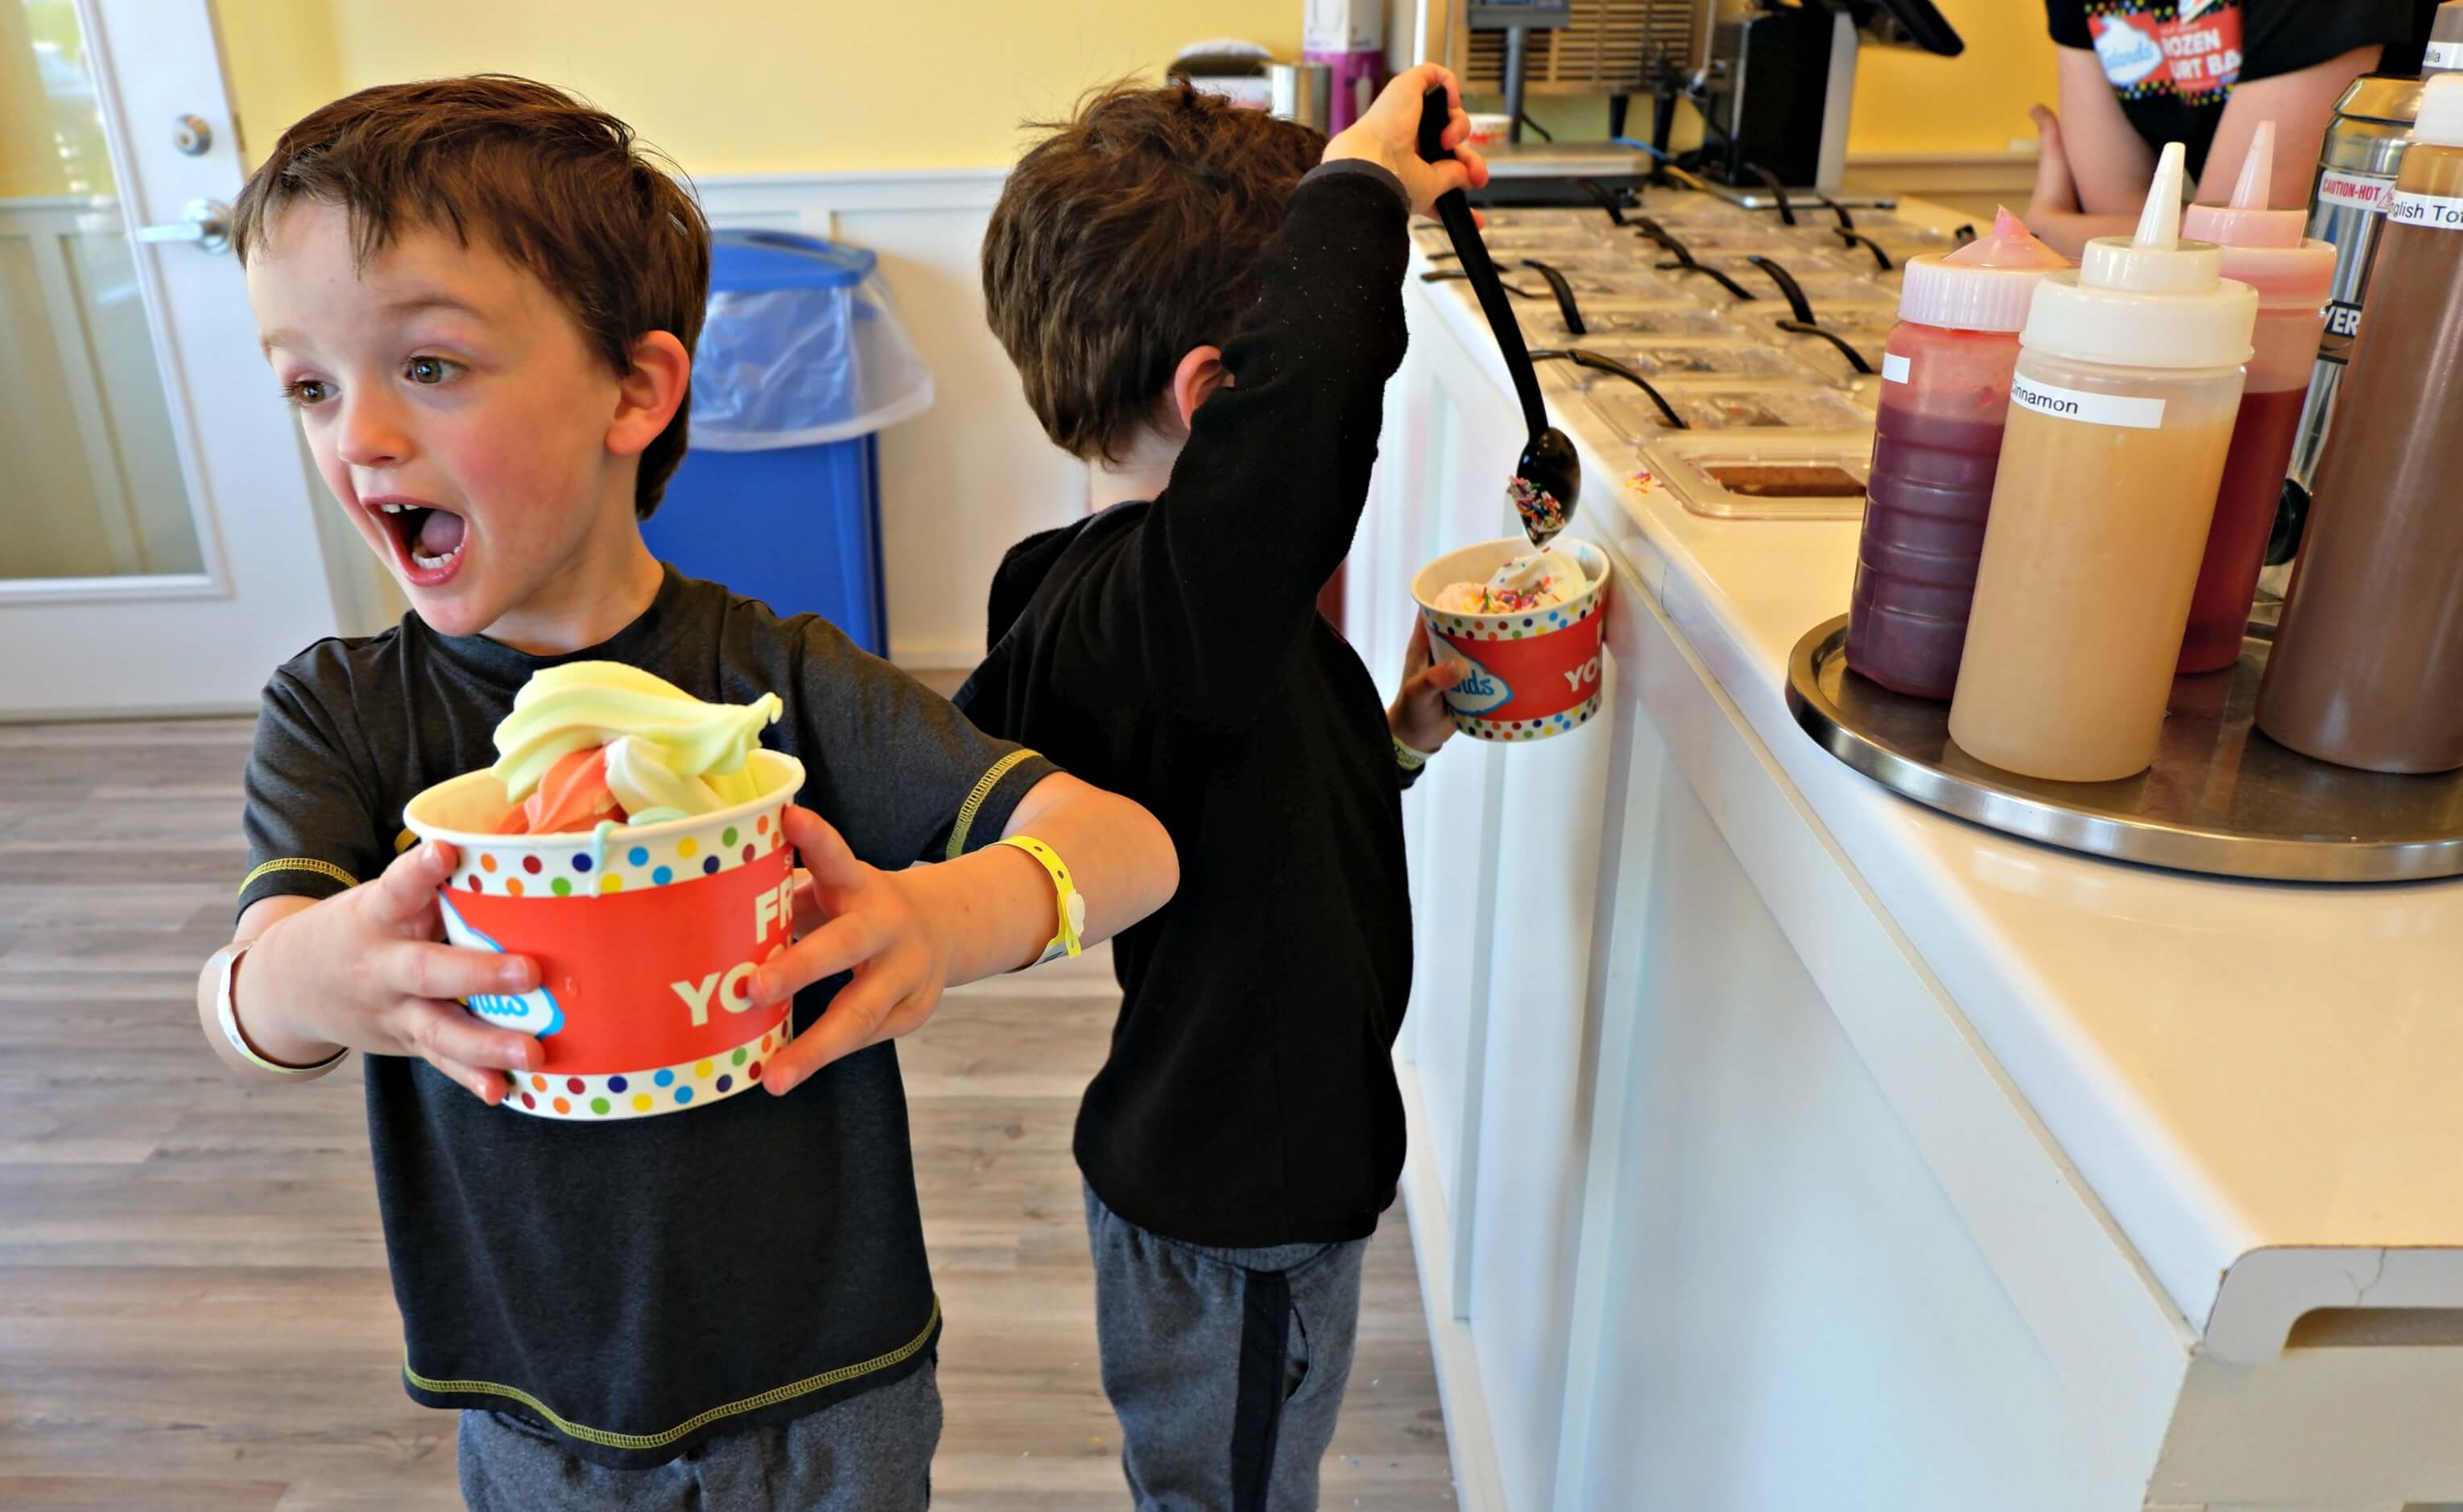 cavendish rainy day ideas pei frozen yogurt kids family things to do vacation pickle planet moncton